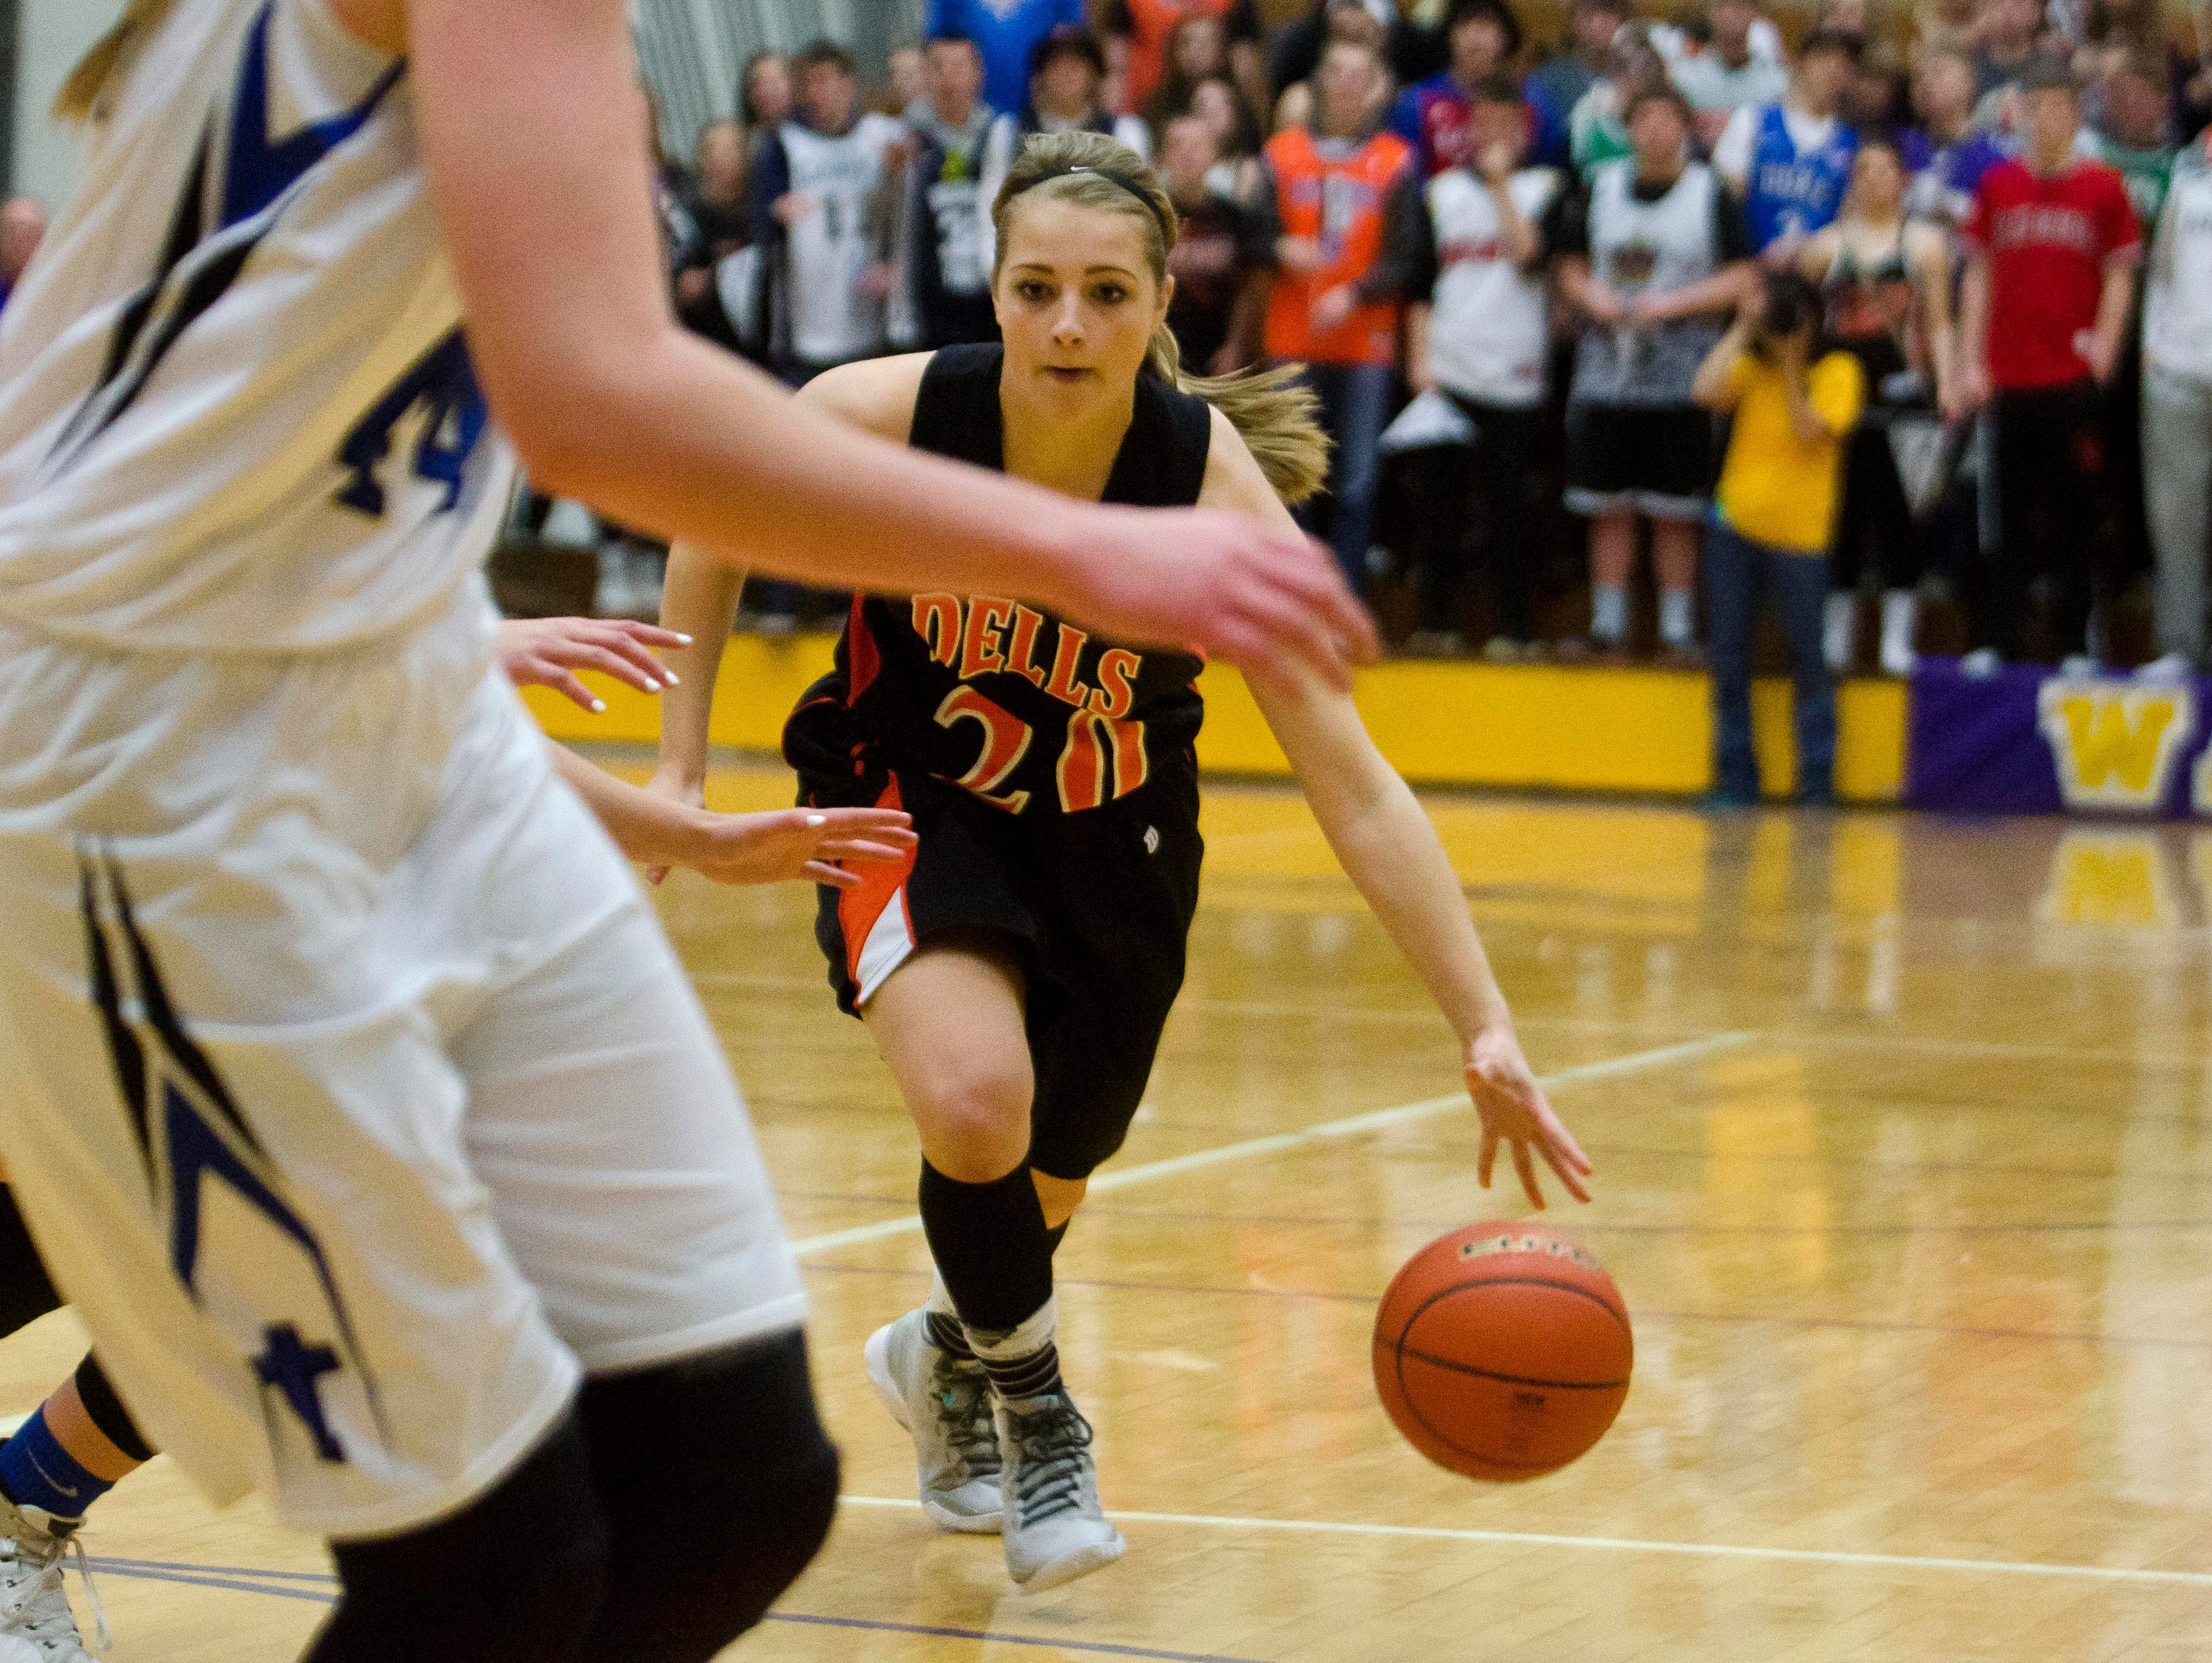 Dell Rapids' Kaylee Hennen drives around a St. Thomas More defender Thursday, March 10, in the Class A state quarterfinals at Watertown Civic Arena. Hennen scored one point. Micah Bader/Dell Rapids Tribune